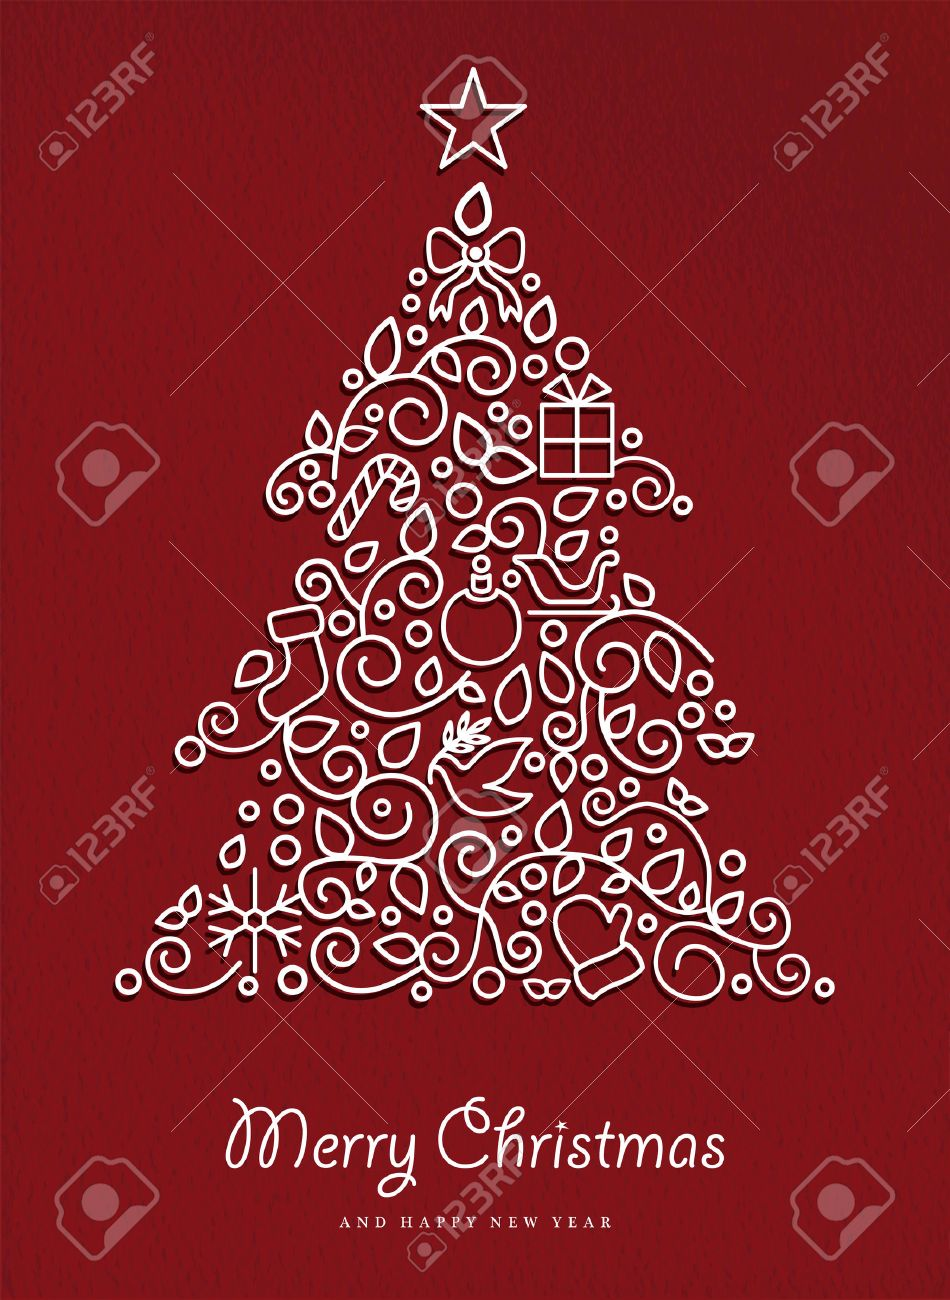 merry christmas and happy new year pine tree made in modern